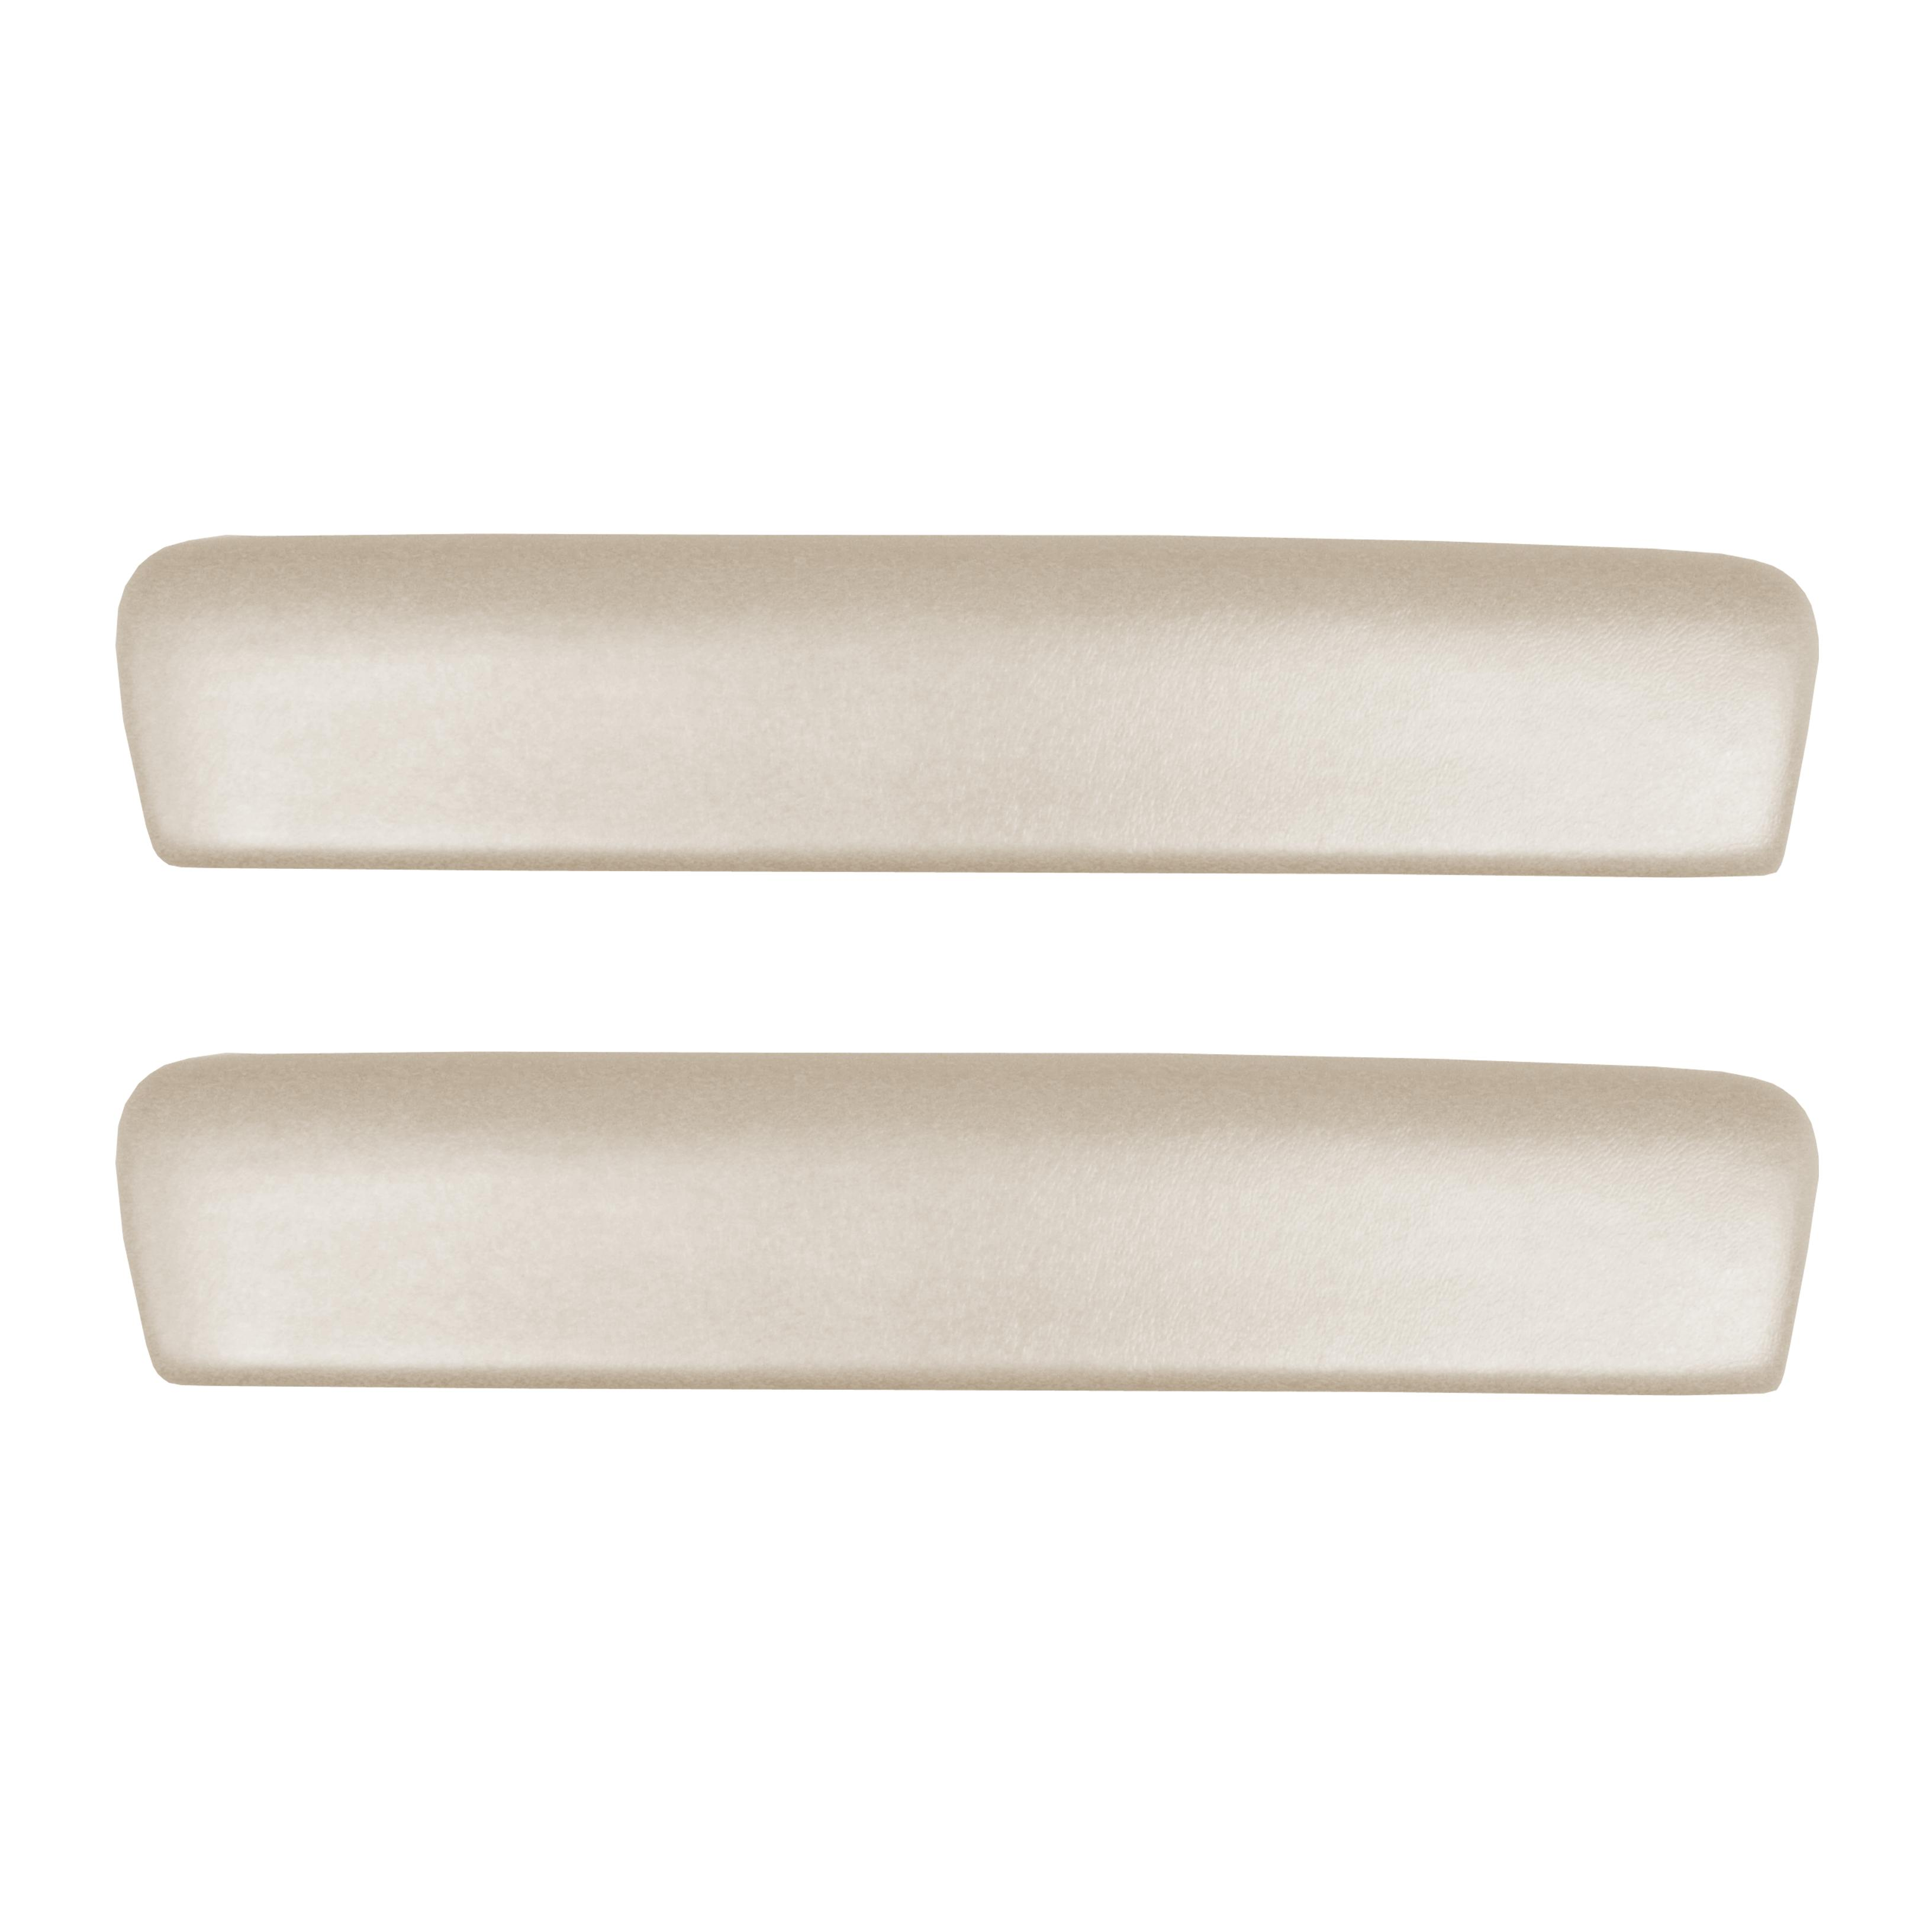 64 GM A-BODY FRONT 11 ARMREST PADS - WHITE SEVILLE